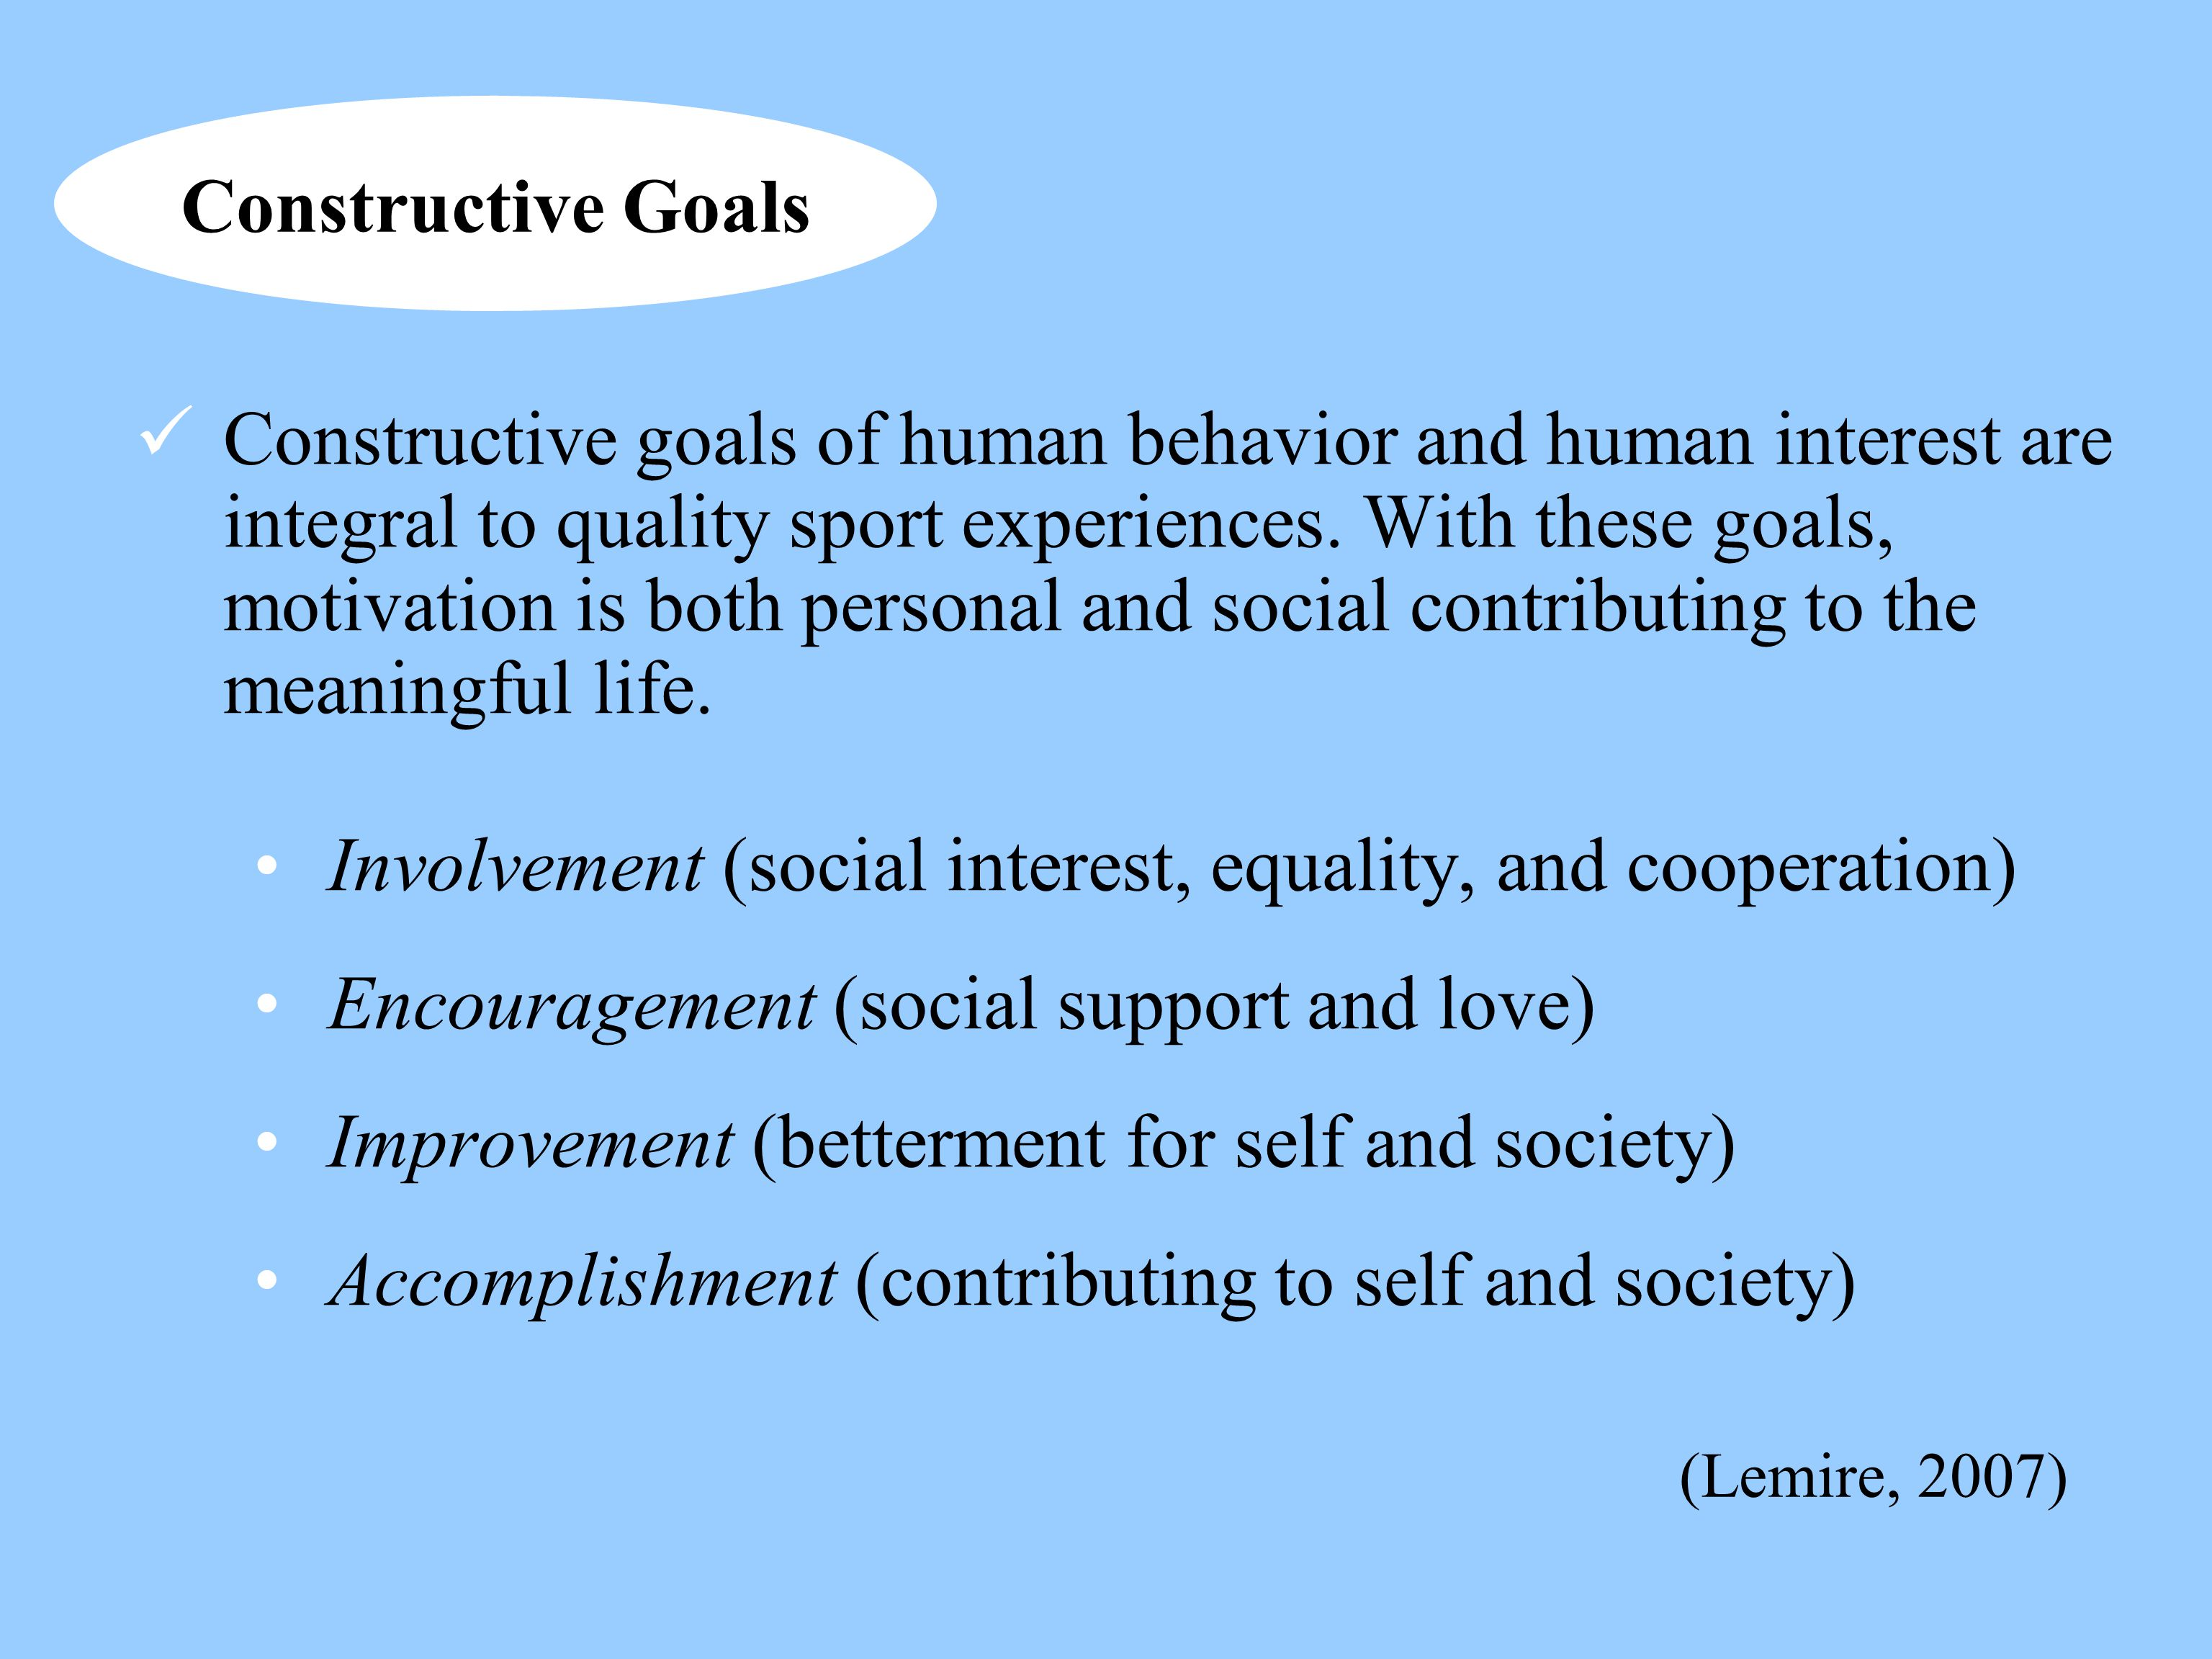 Constructive goals of human behavior and human interest are integral to quality sport experiences. With these goals, motivation is both personal and s